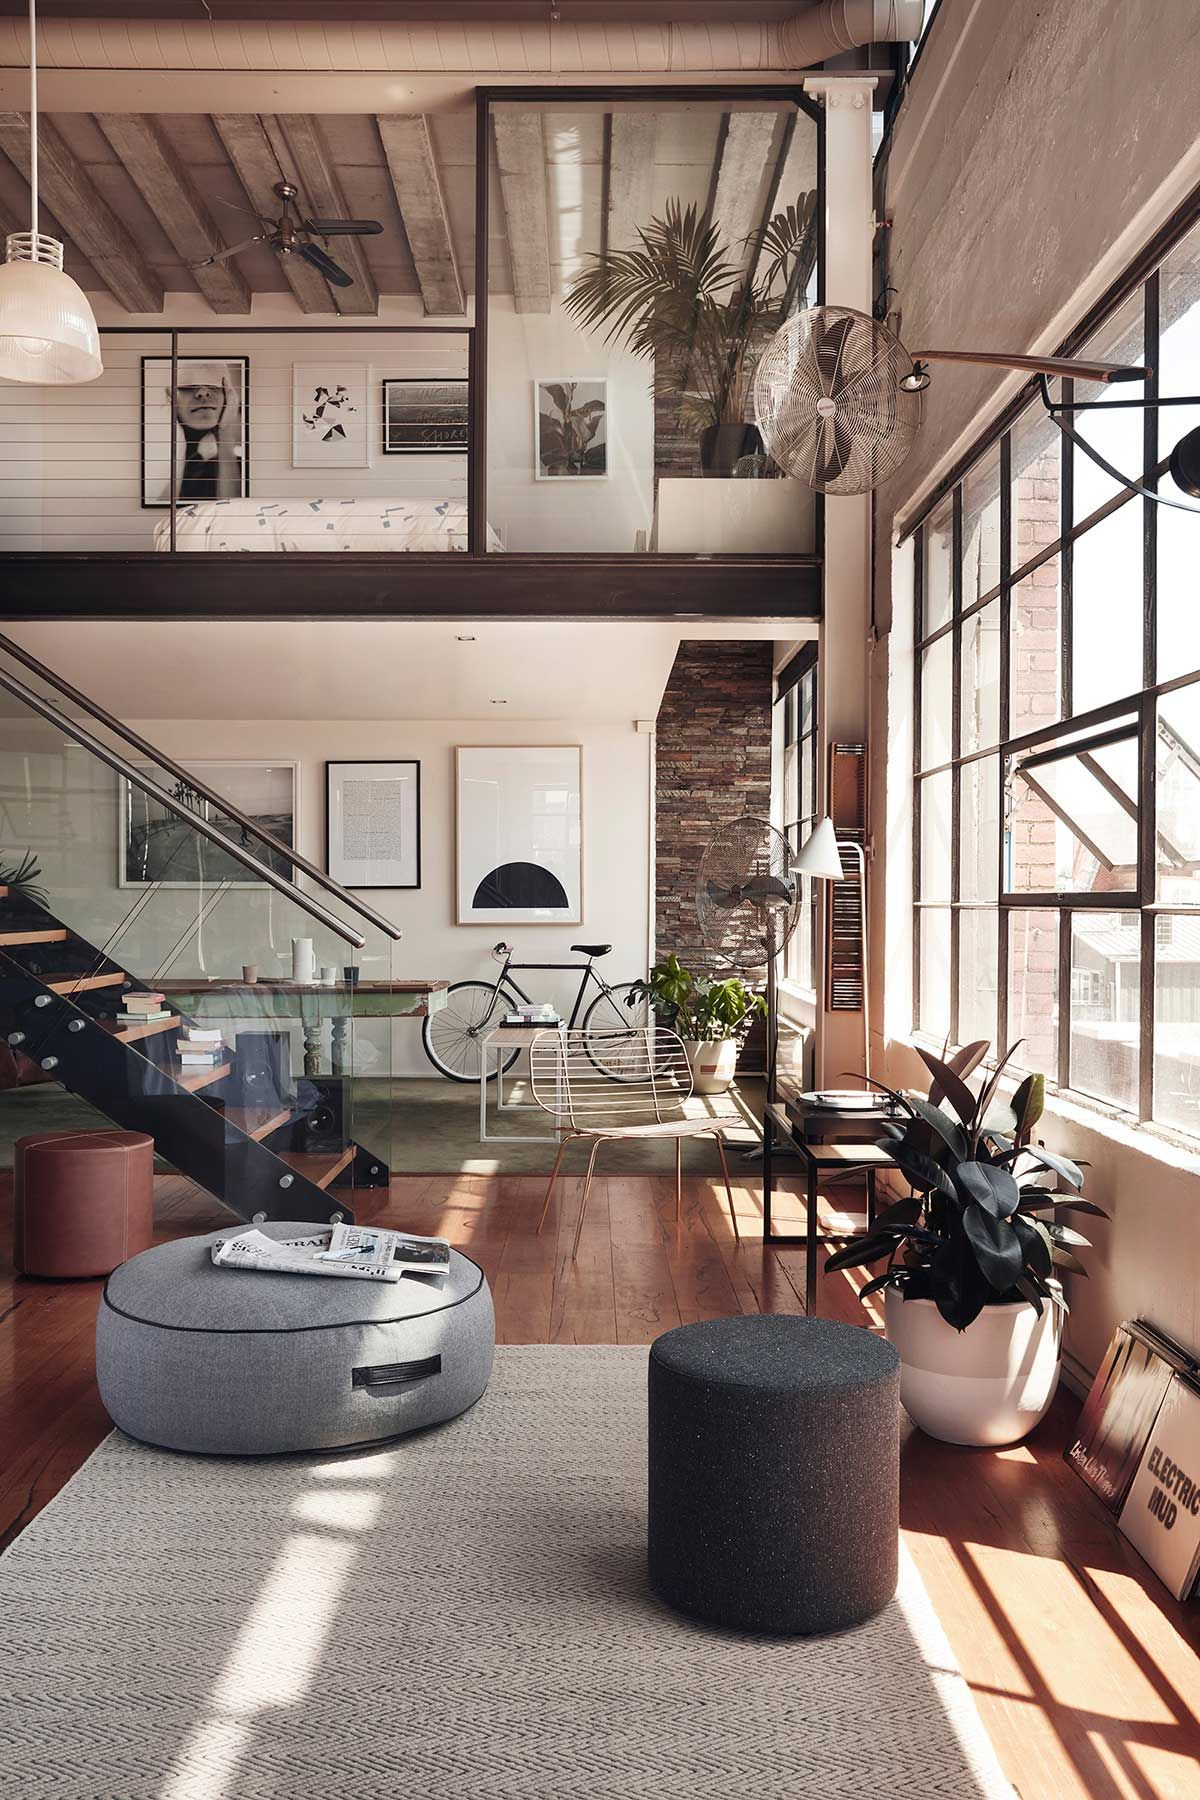 Living Room Pinterest Interior Design 1000 ideas about interior design on pinterest home online homewares and furniture purveyor hunting for george has collaborated with melbourne studio grazia